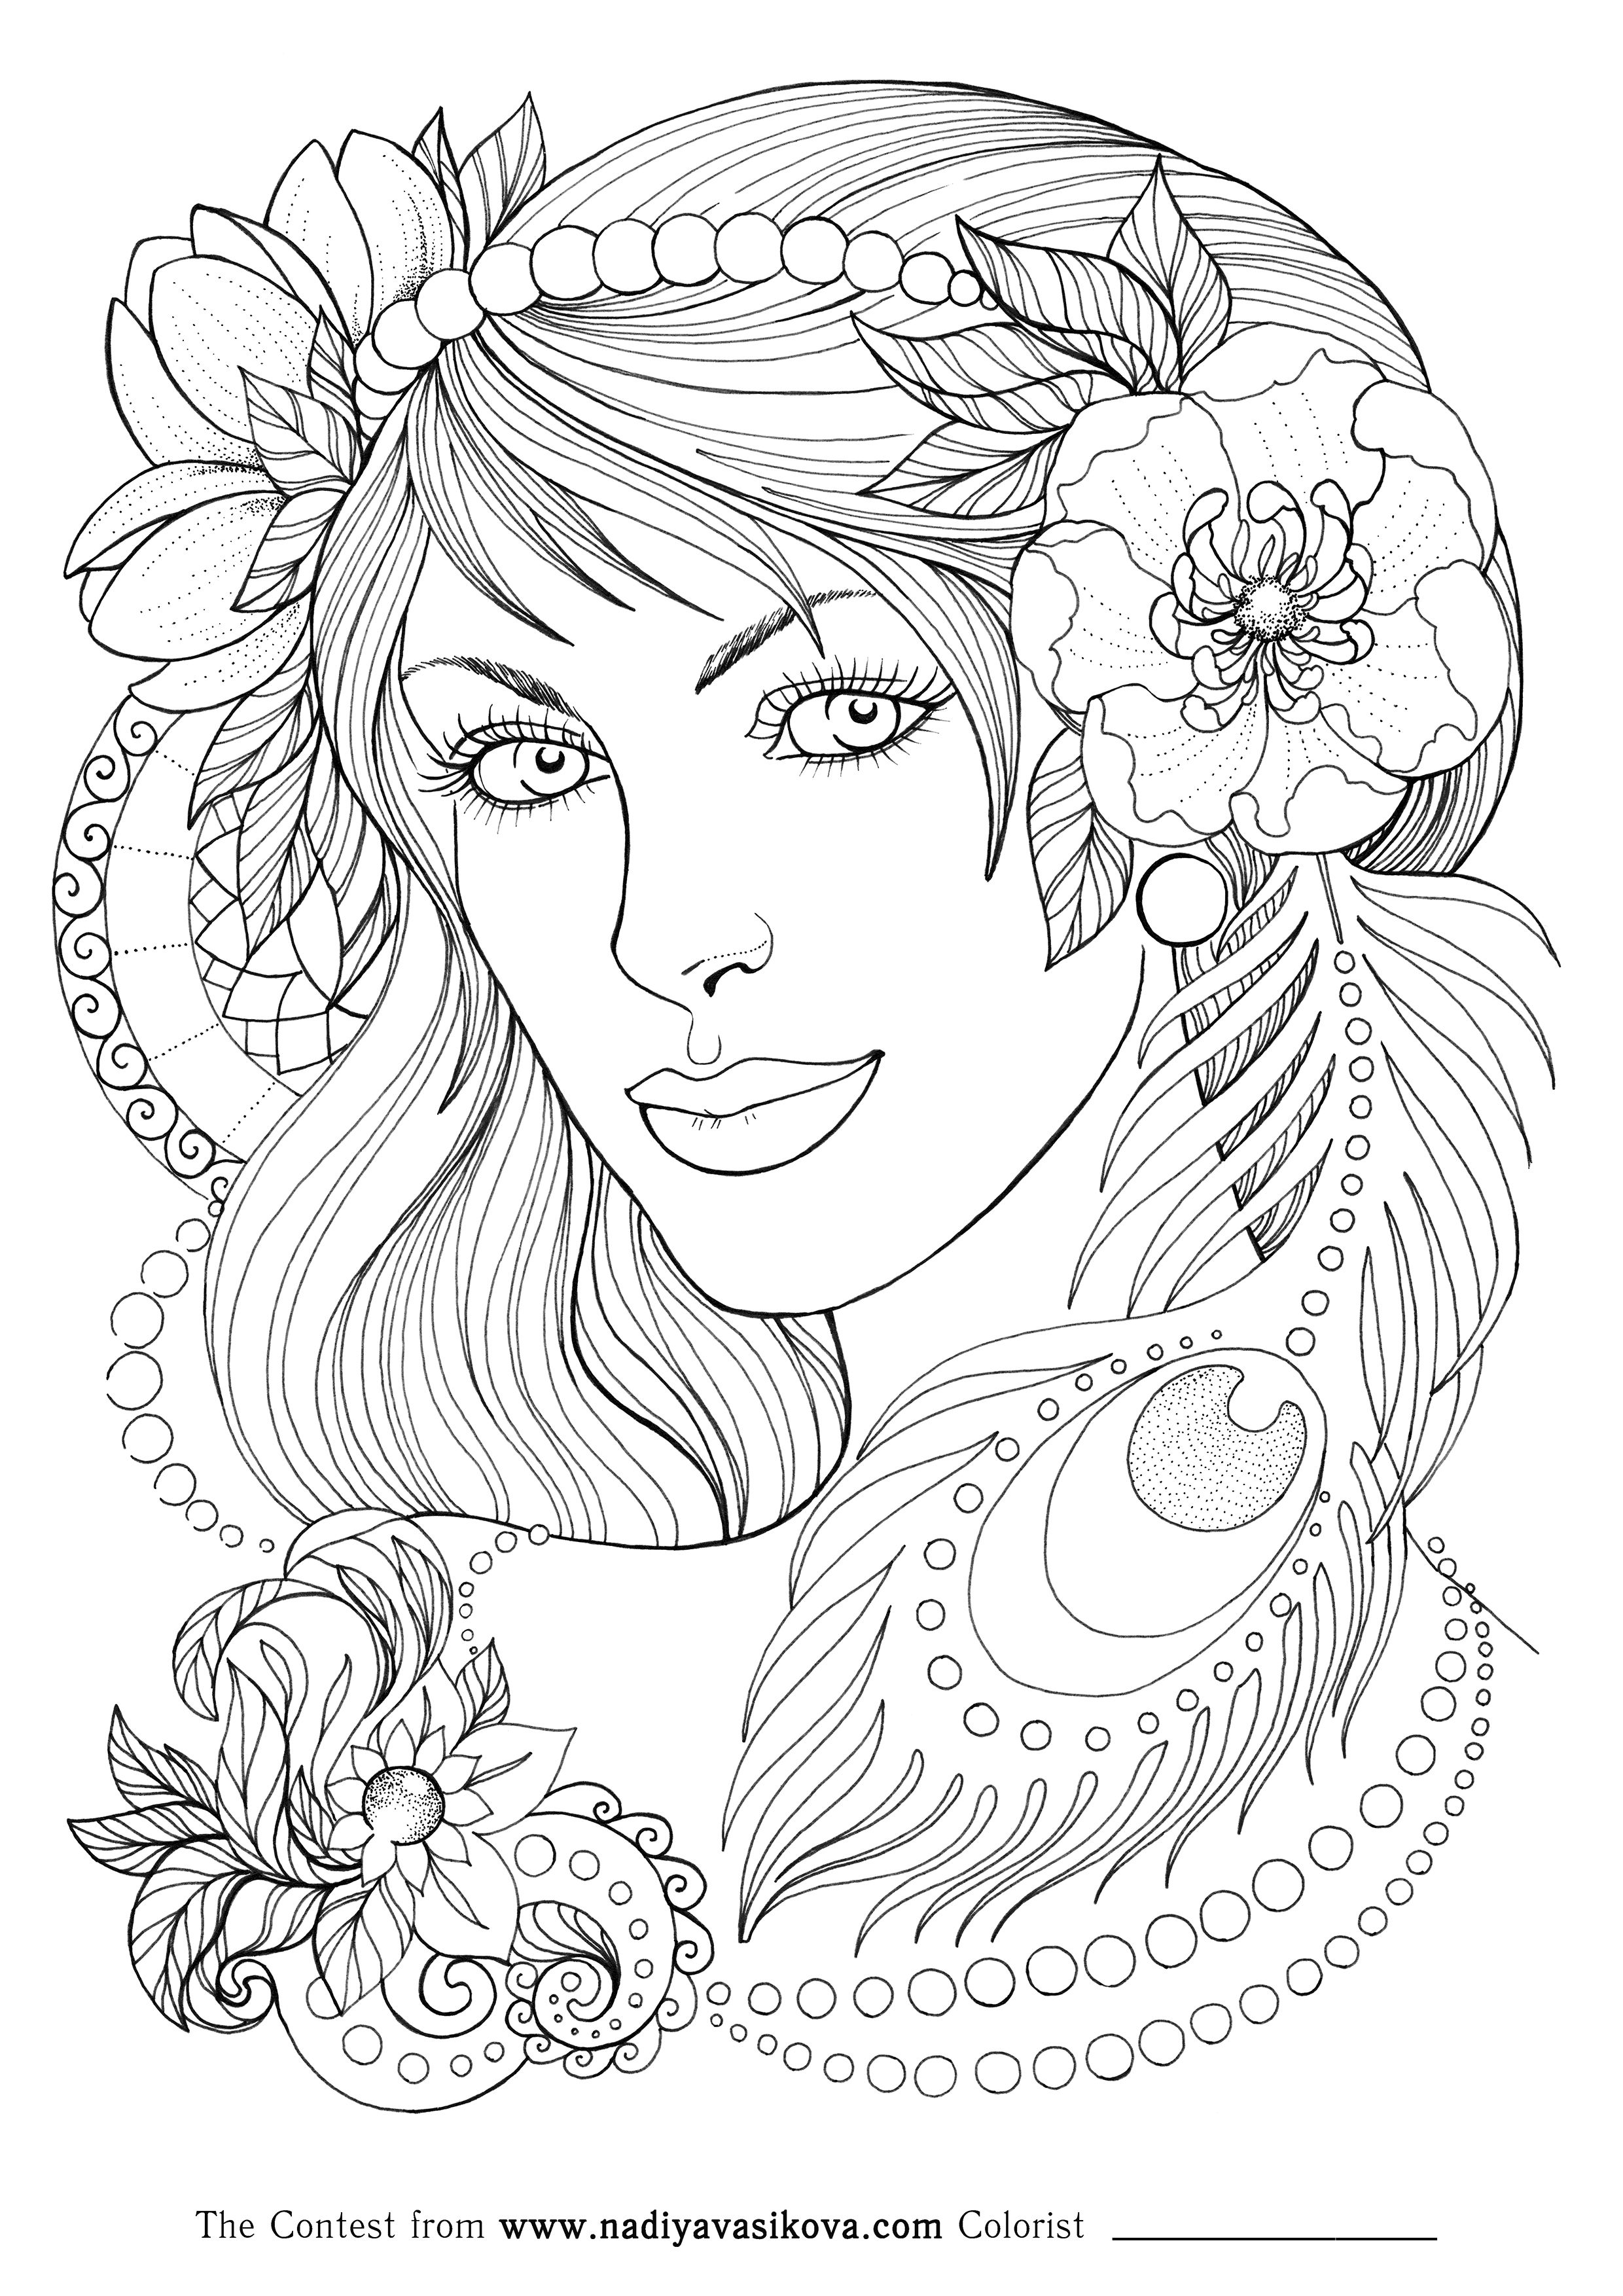 Pearl Beads Contest Jpg 2480 3508 Dance Coloring Pages Coloring Pages Inspirational Shopkins Colouring Pages